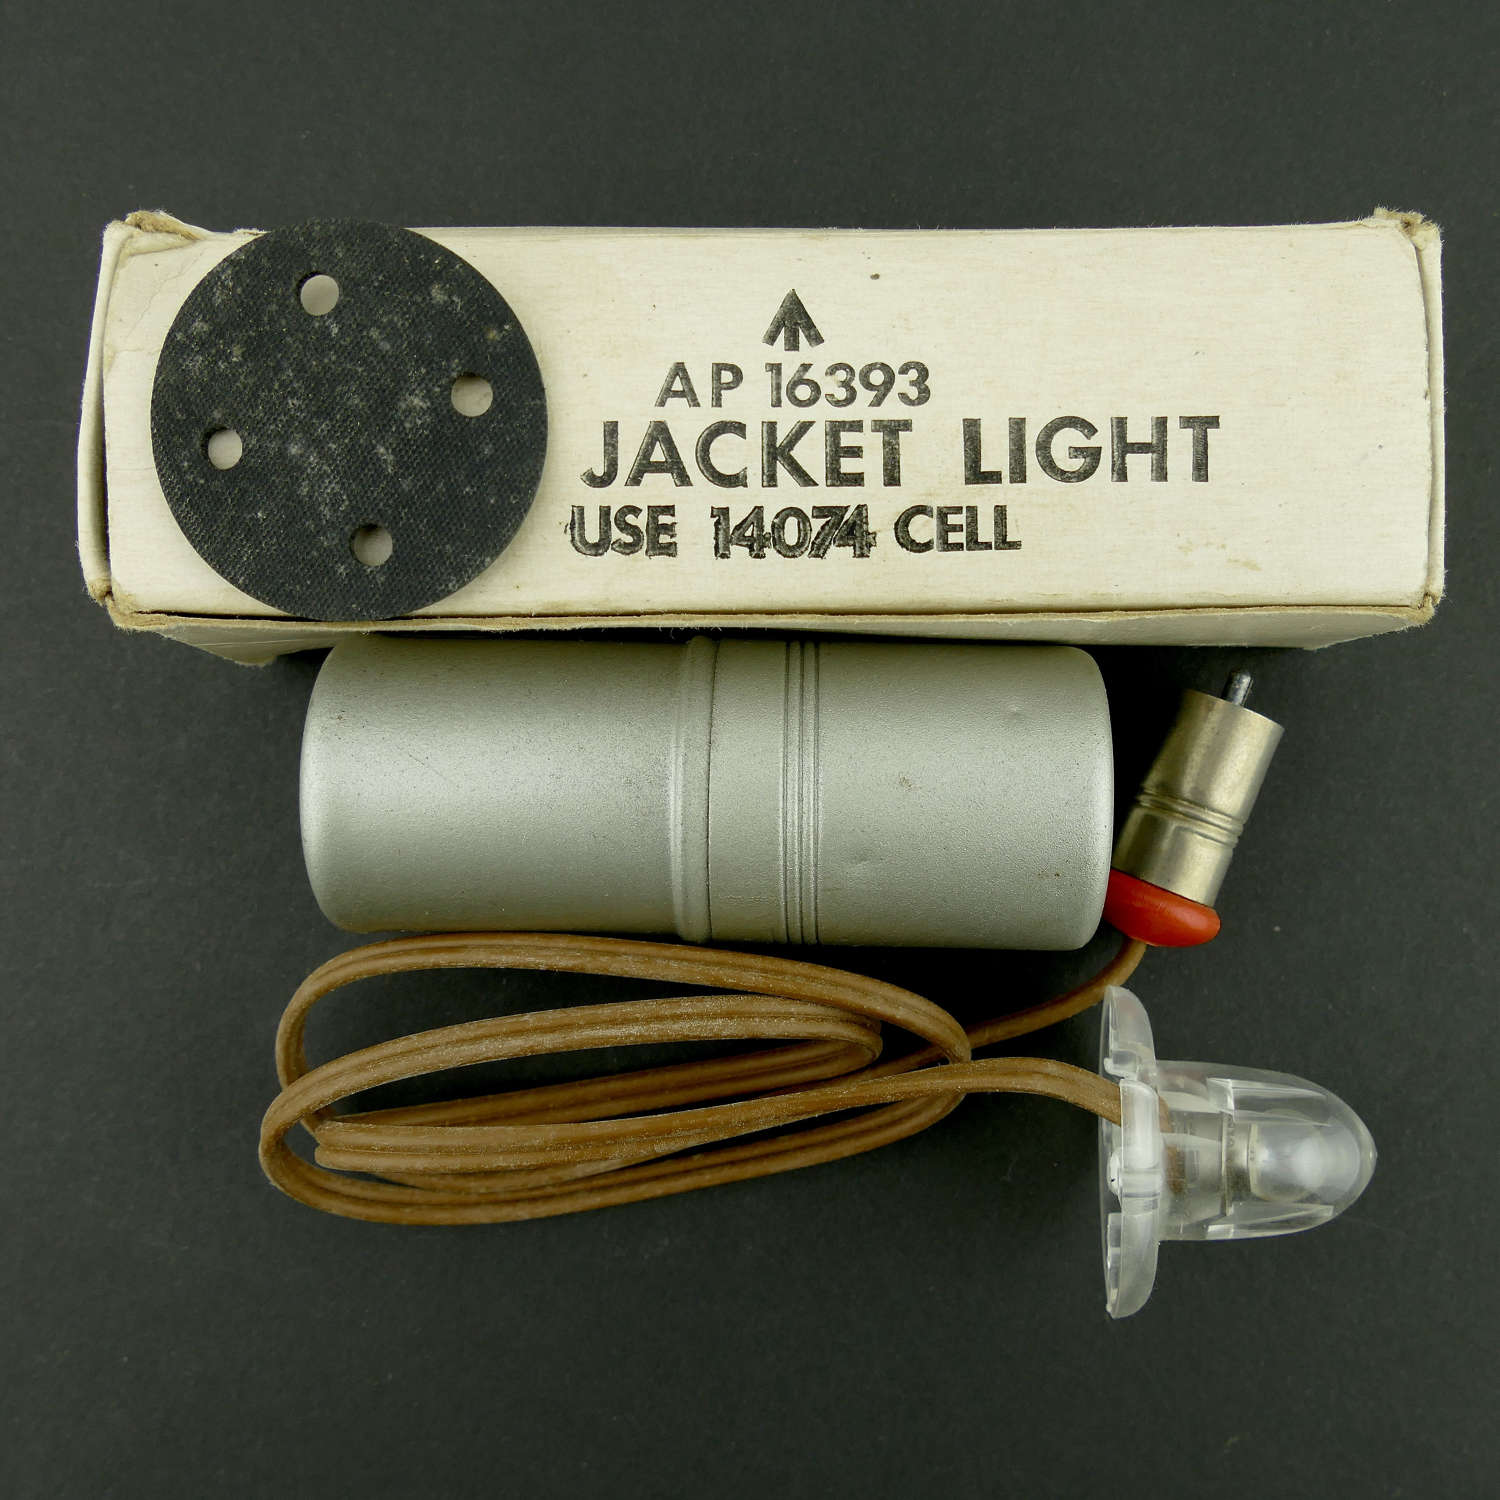 RAF life jacket light, boxed